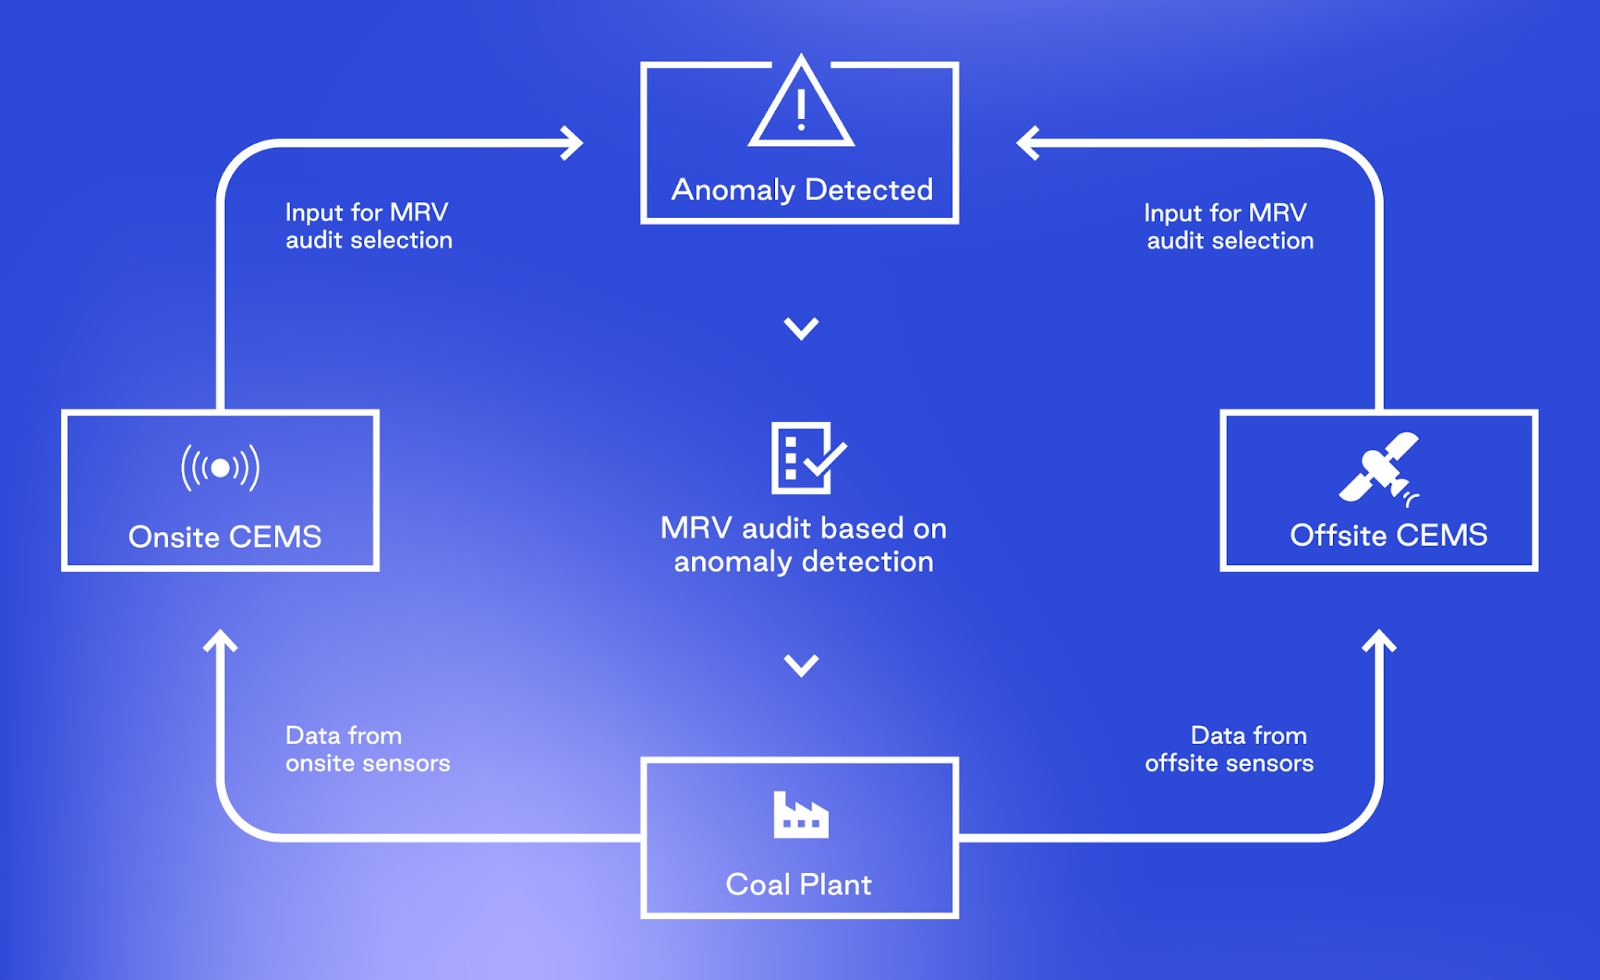 Illustration of an anomaly detection system to determine MRV audits for companies regulated by China's ETS